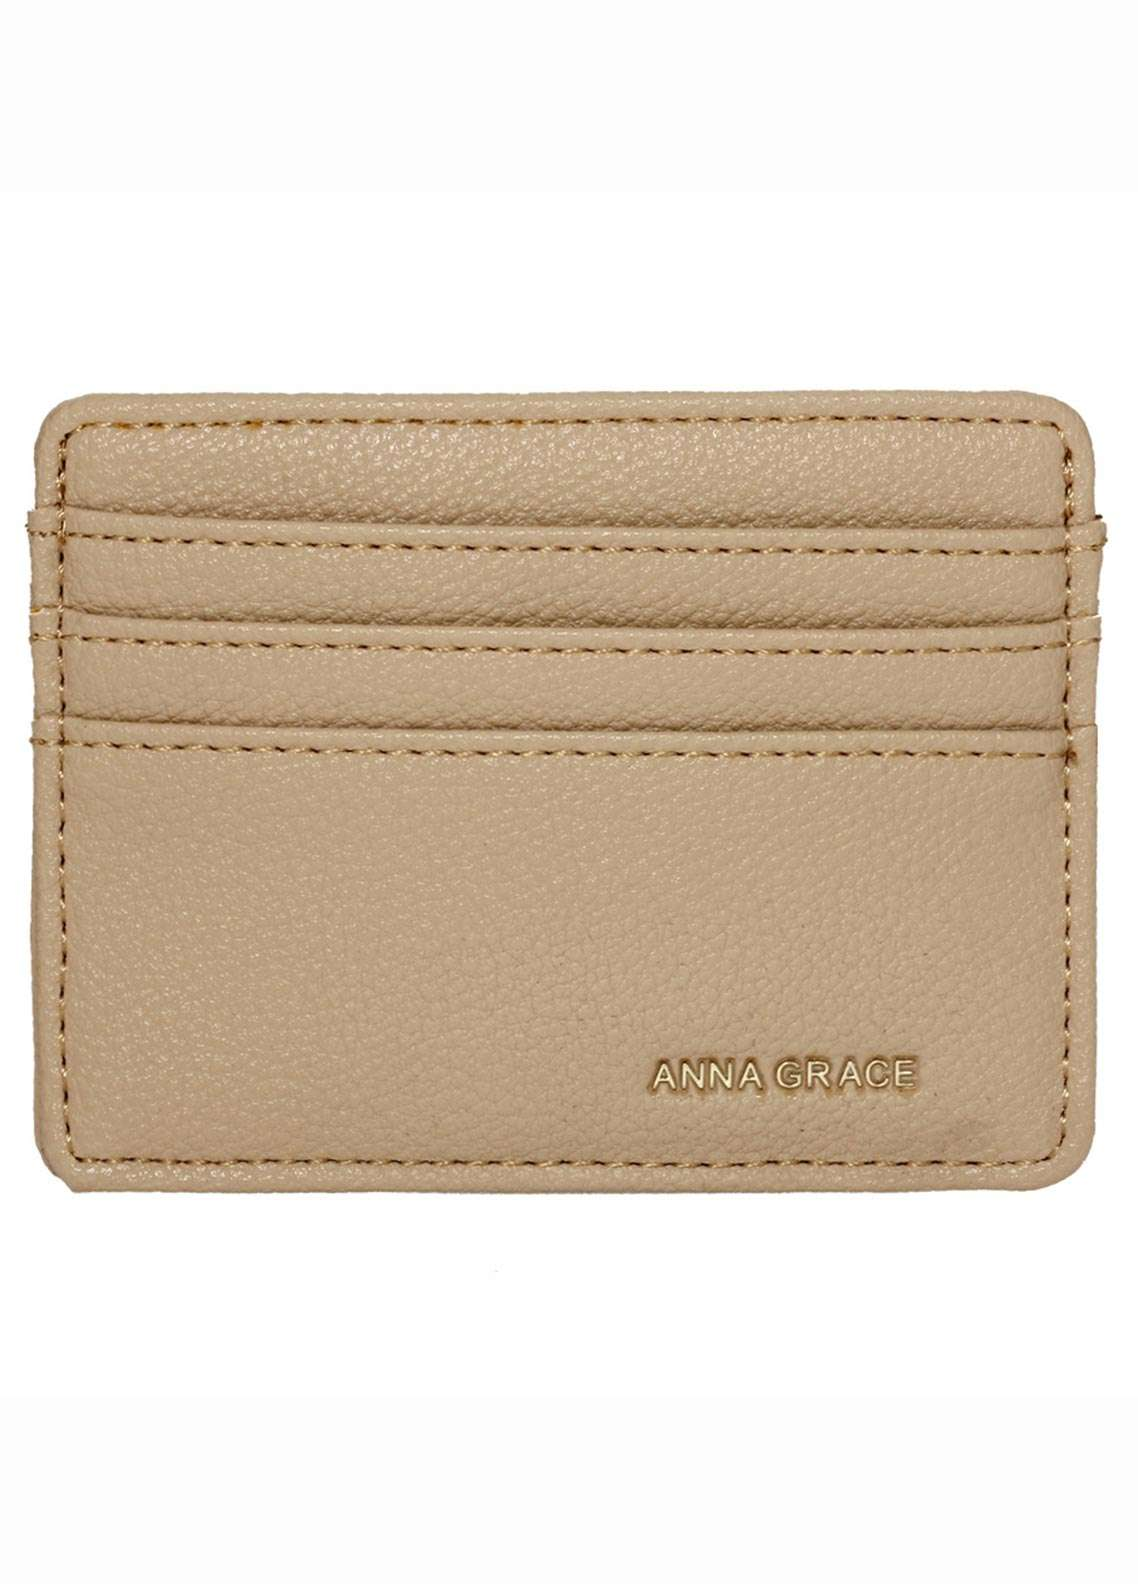 Anna Grace London Faux Leather Wallet   for Women  Nude with Rugged Texture